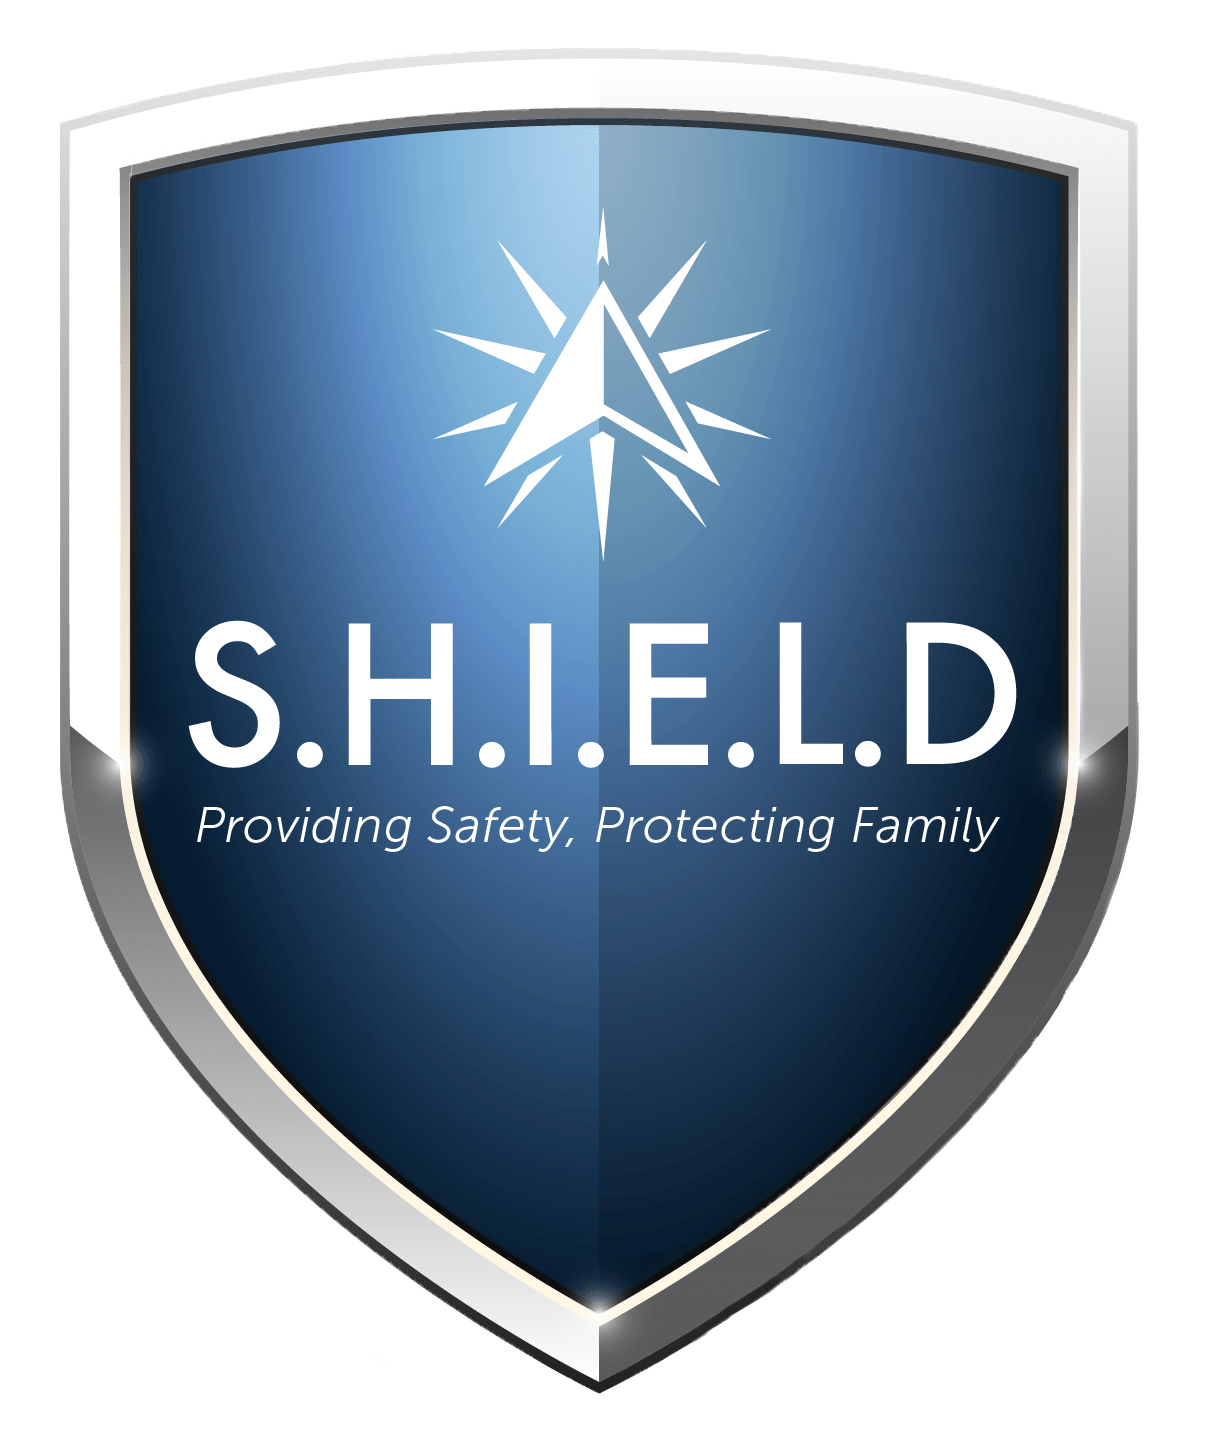 SHIELD Program logo for Trilogy Health Services